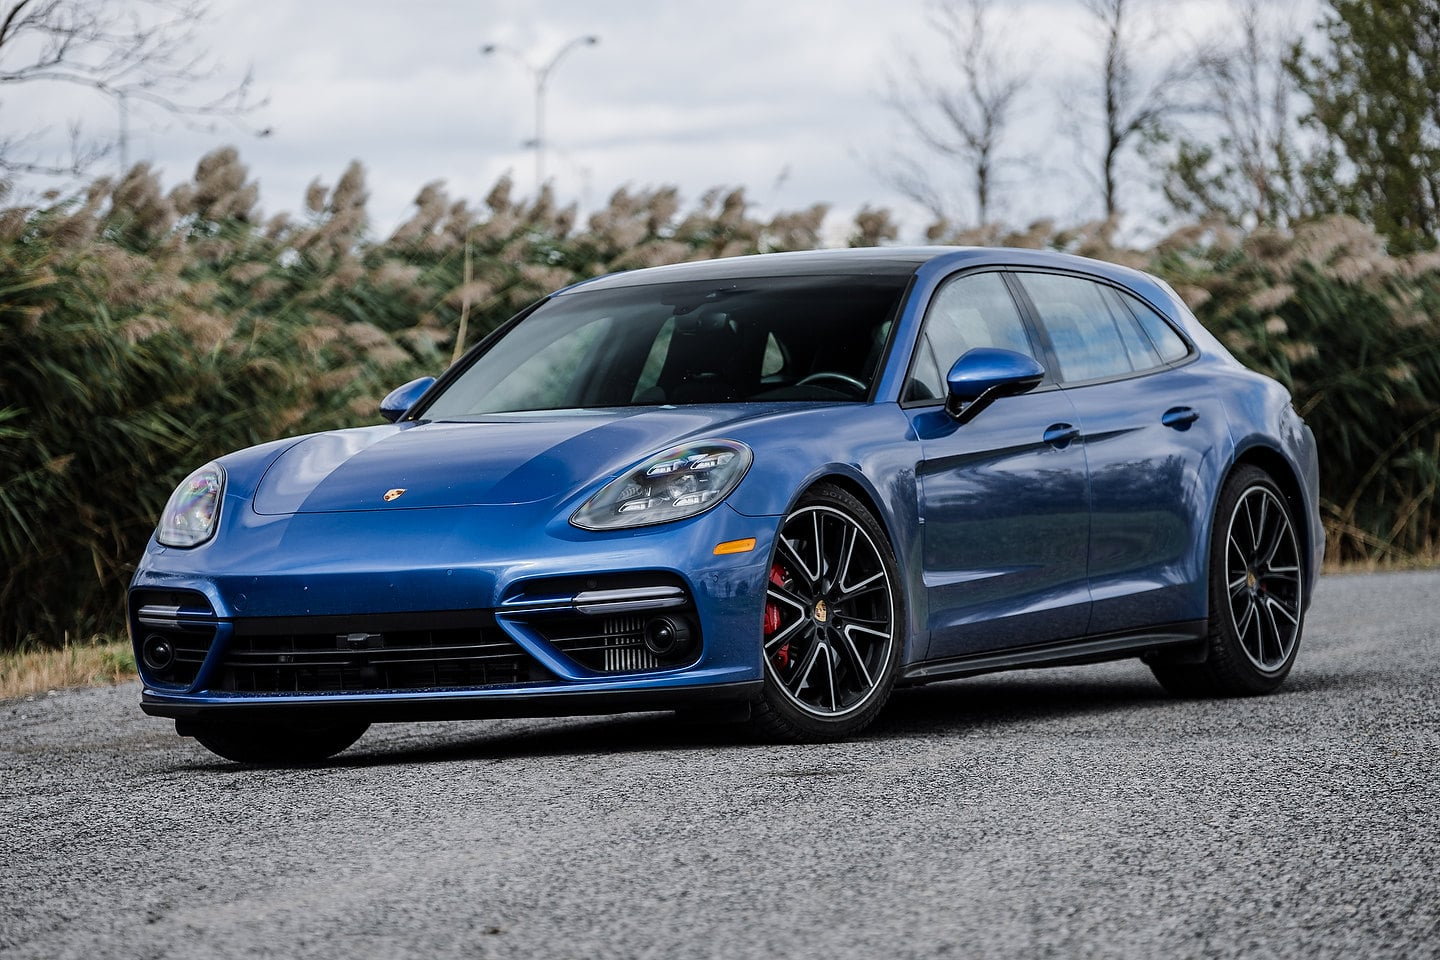 Best-selling cars in Canada 2018 - Porsche